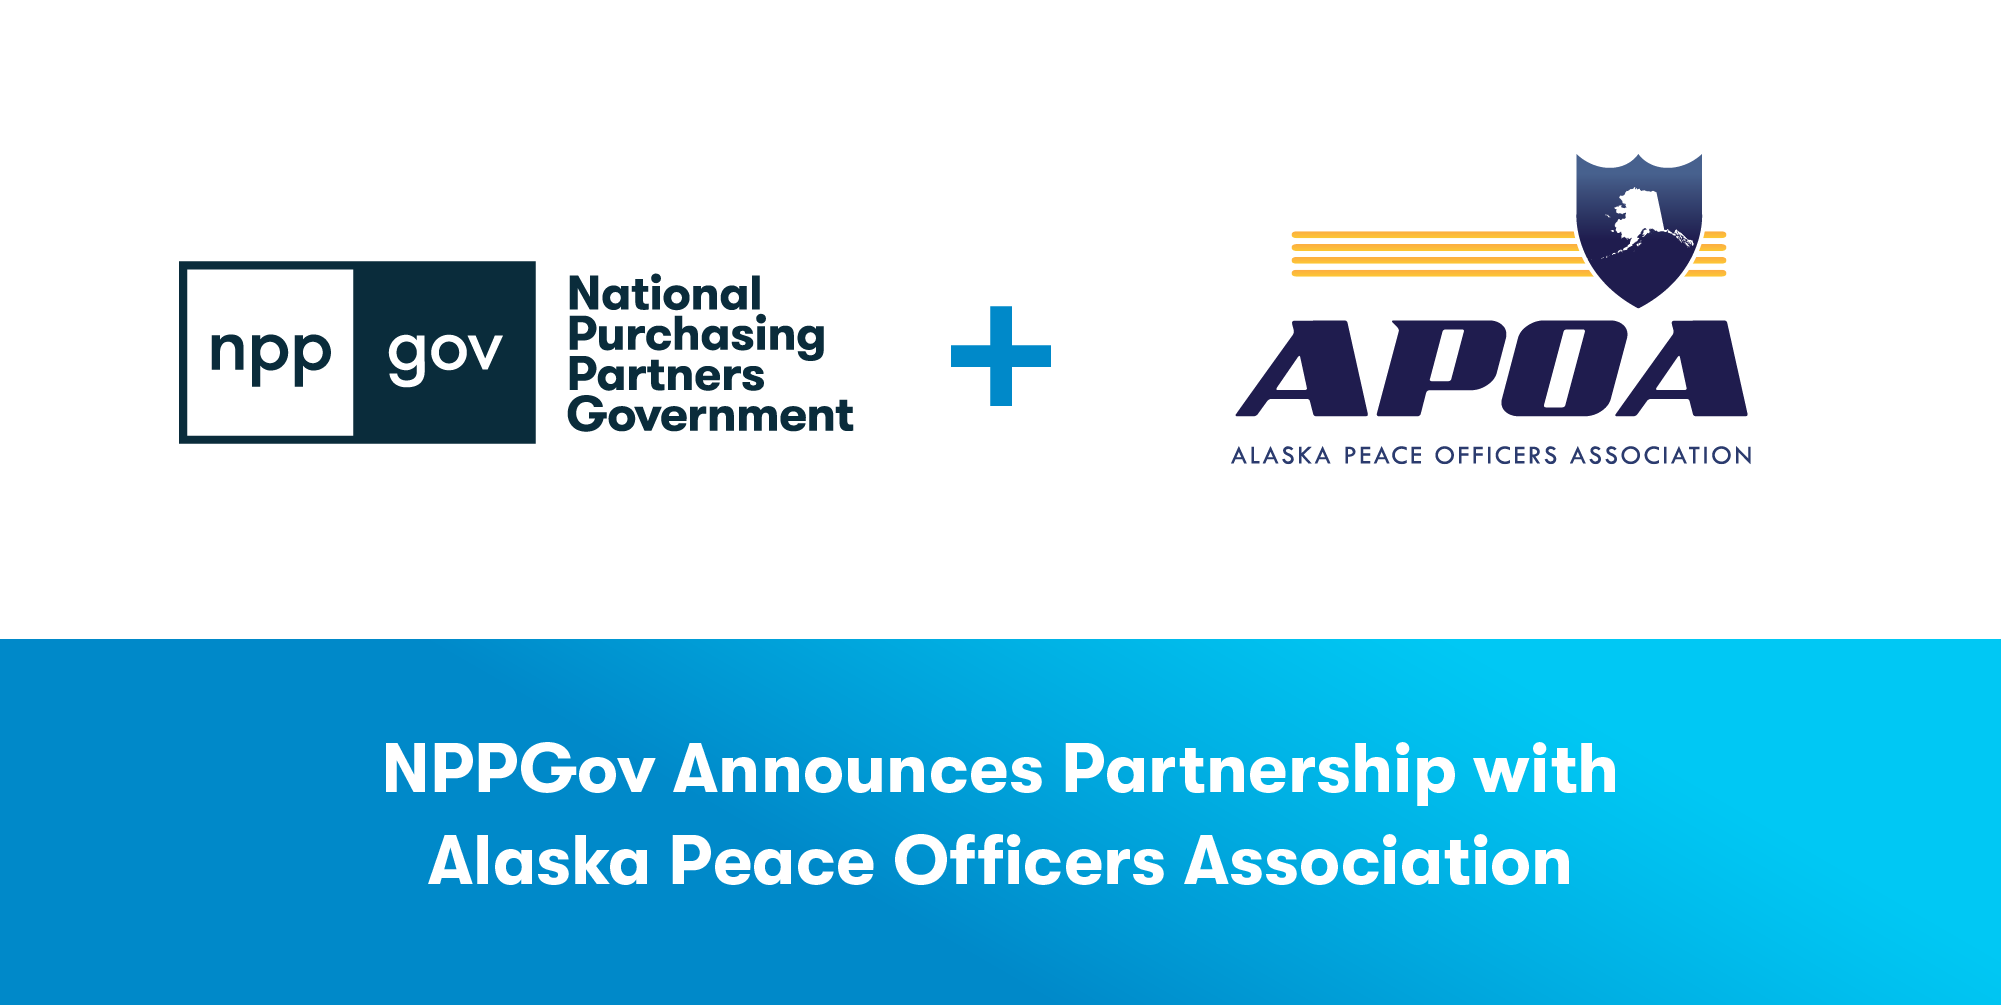 NPPGov Partners With Alaska Peace Officers Association